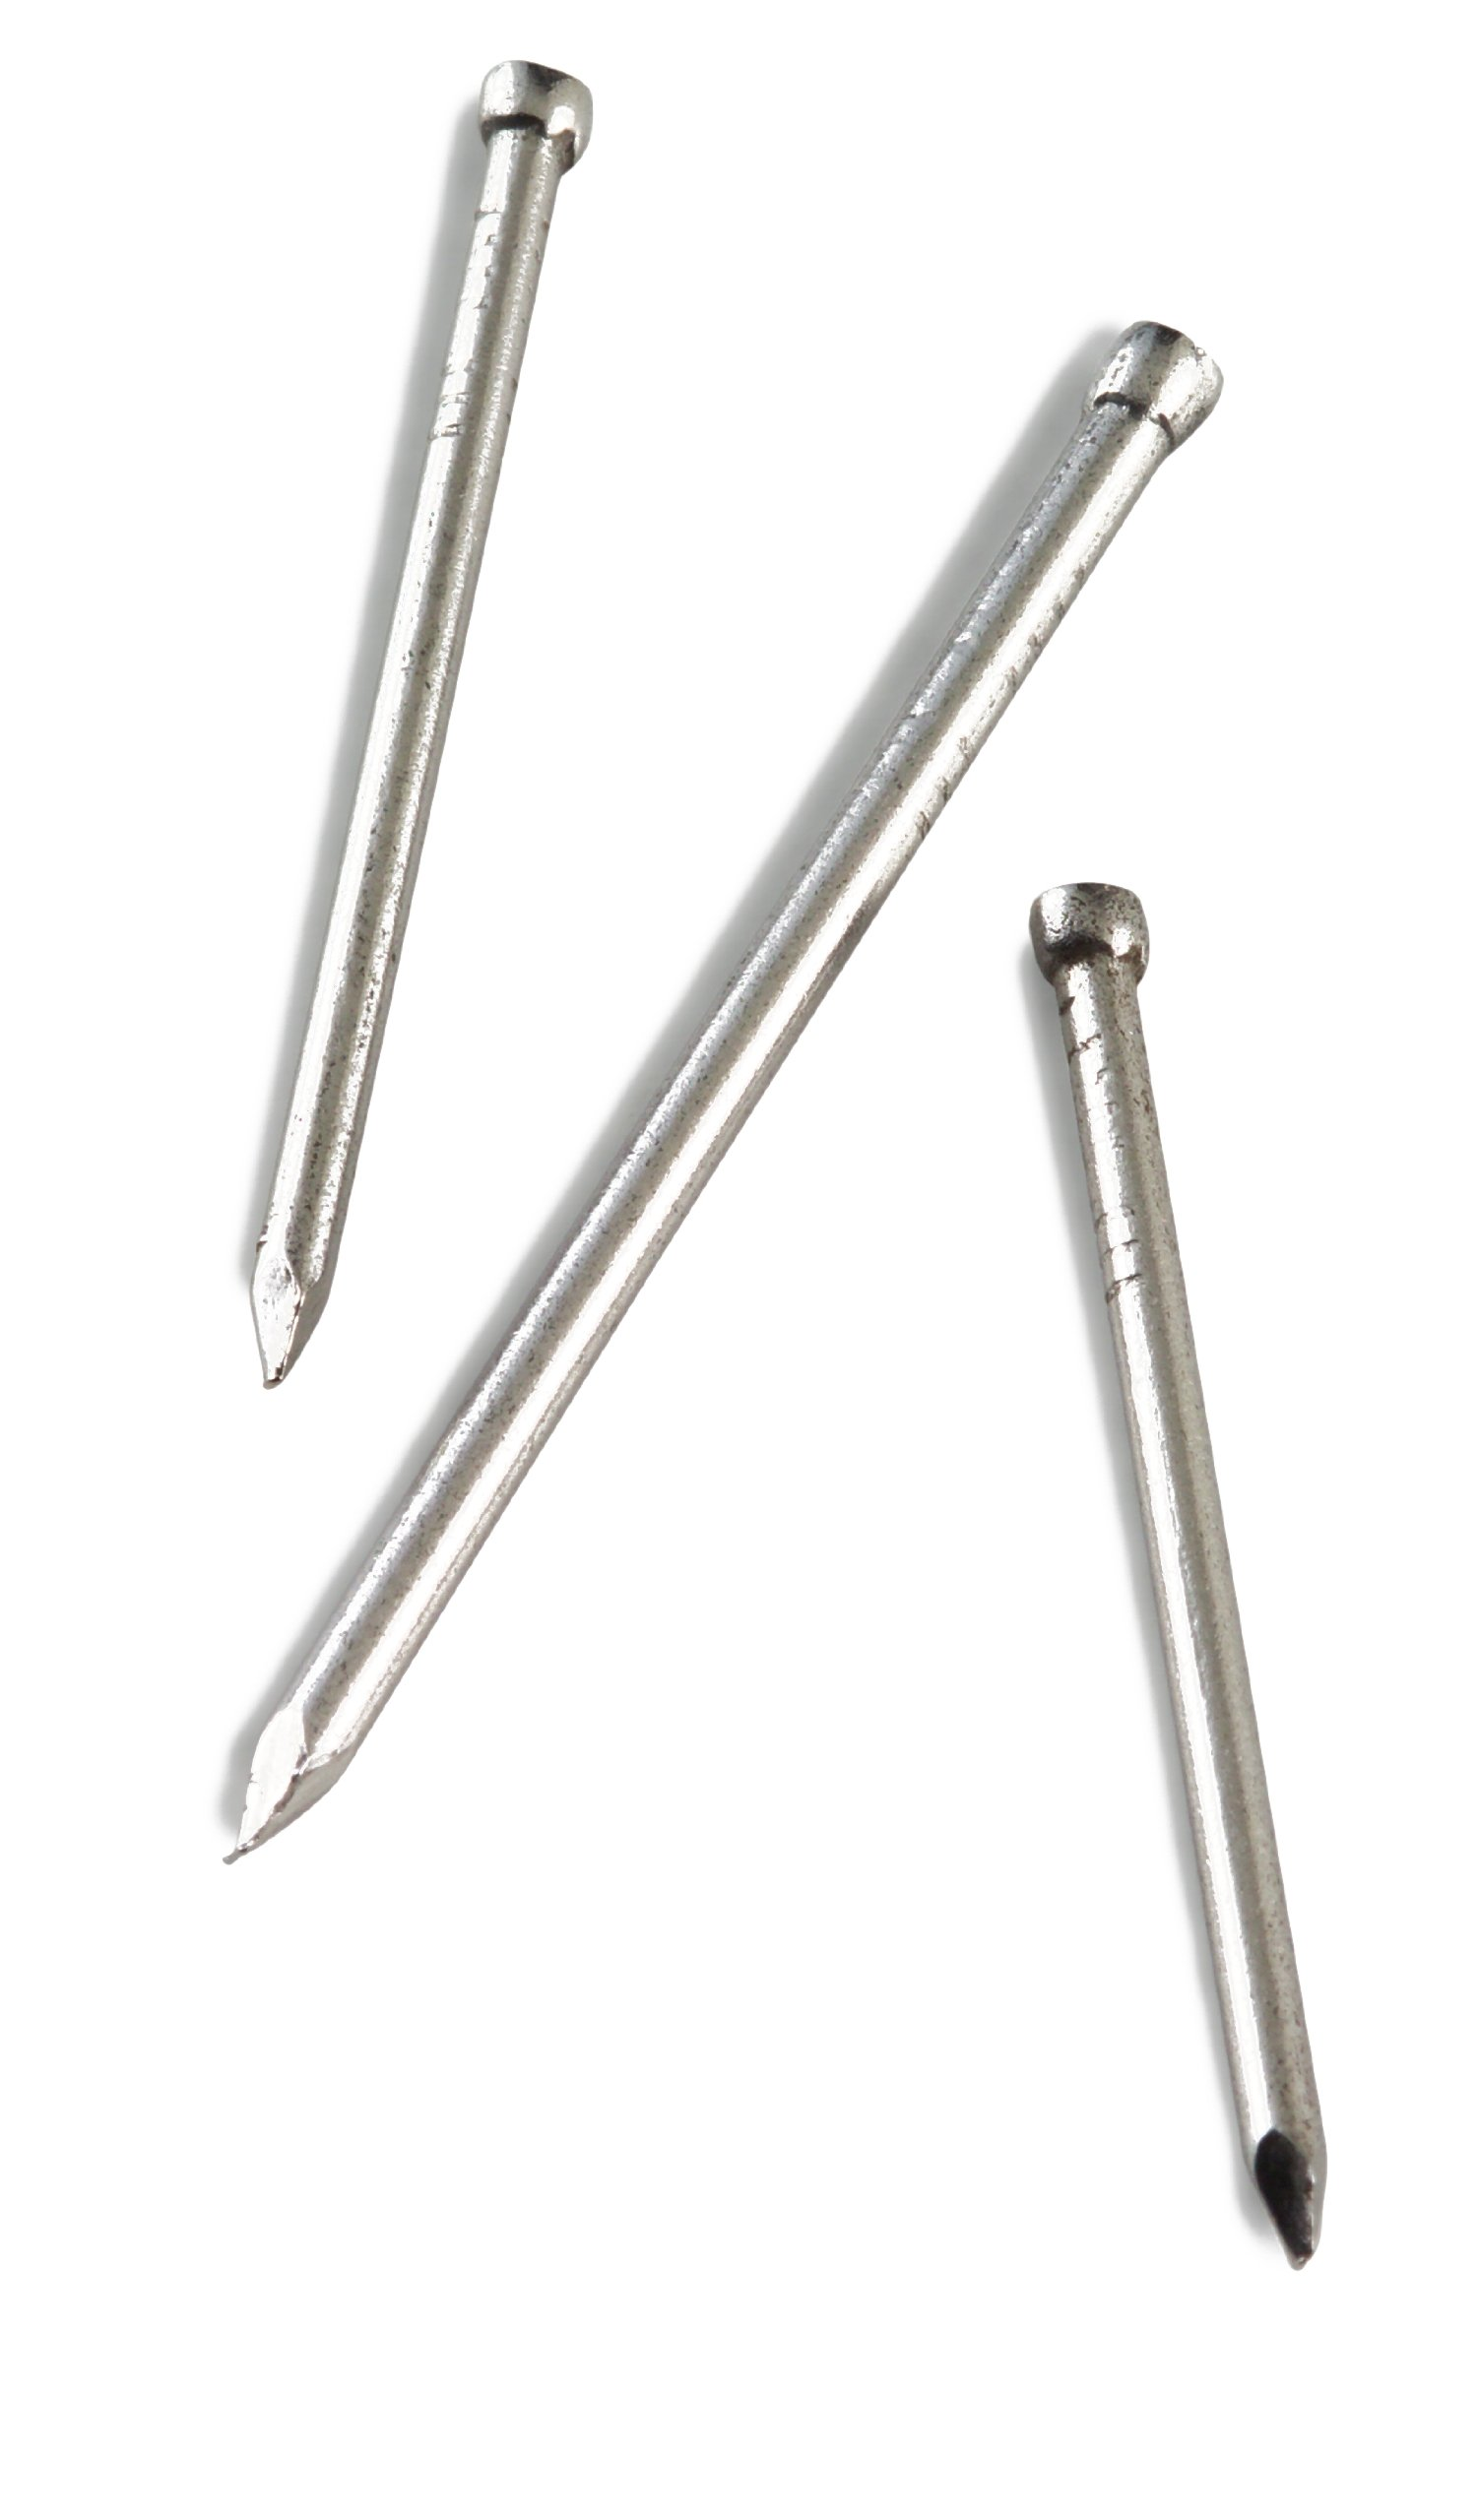 Simpson Strong Tie S6FN1 6d Hand-Drive Finishing Nails with 2-Inch 13 Gauge 304 1-Pound Stainless Steel